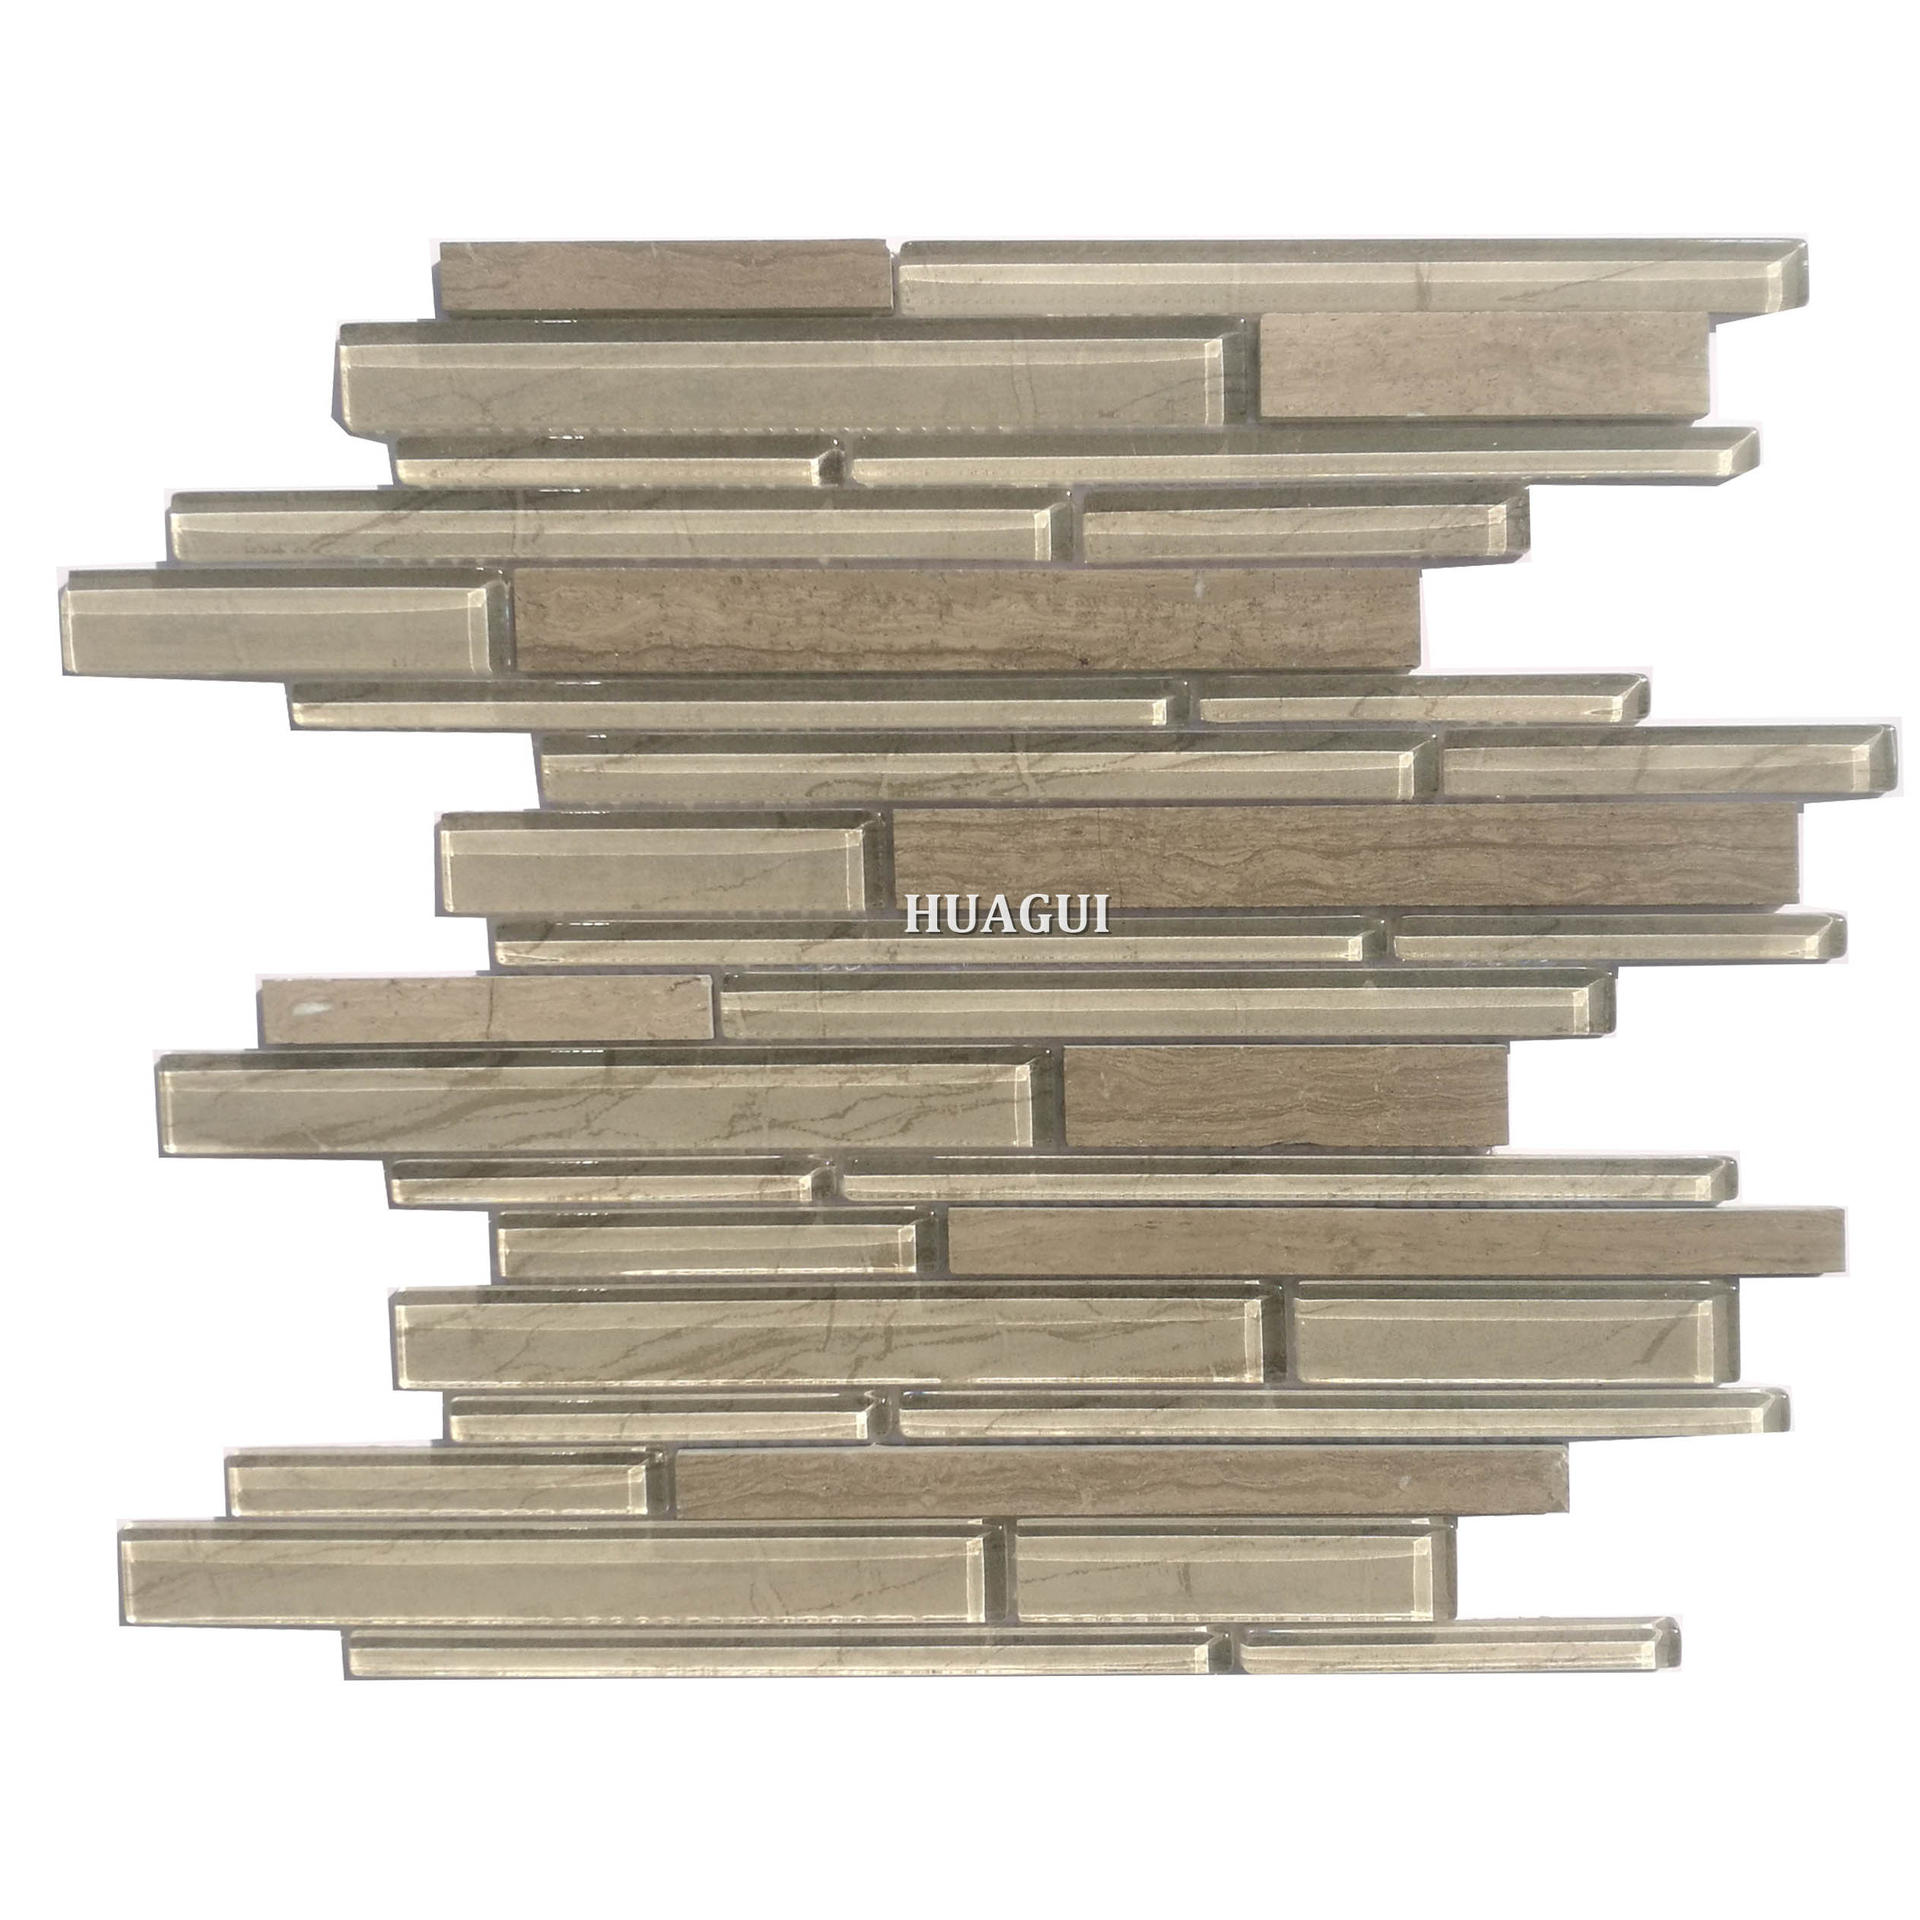 Linear stove backsplash ideas glossy strip glass mix stone wall tile for sale